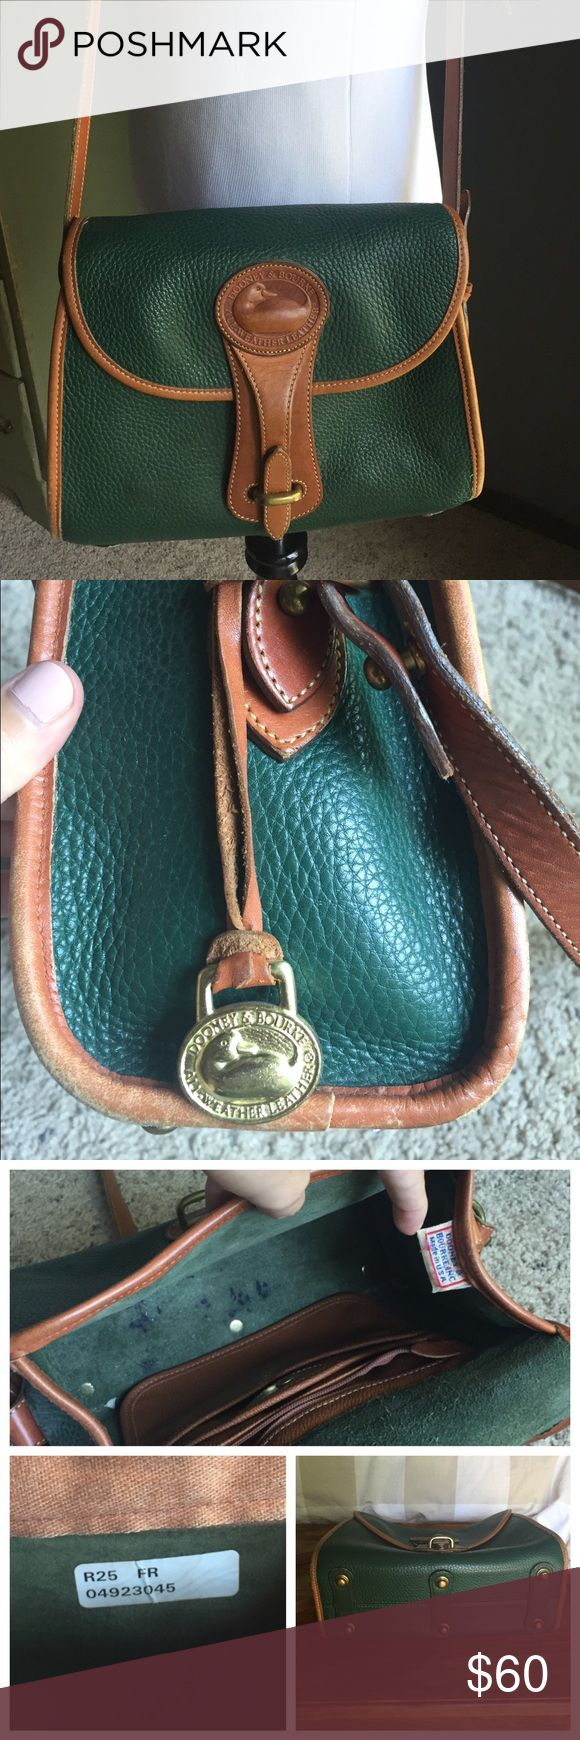 Vintage Dooney & Bourke Shoulder Bag Vintage all-weather leather crossbody bag from Dooney & Bourke. Features 3 interior pockets and an adjustable shoulder strap. Comes with fob. Inside has a few pen marks, but other than that this bag is in good shape! Dooney & Bourke Bags Shoulder Bags